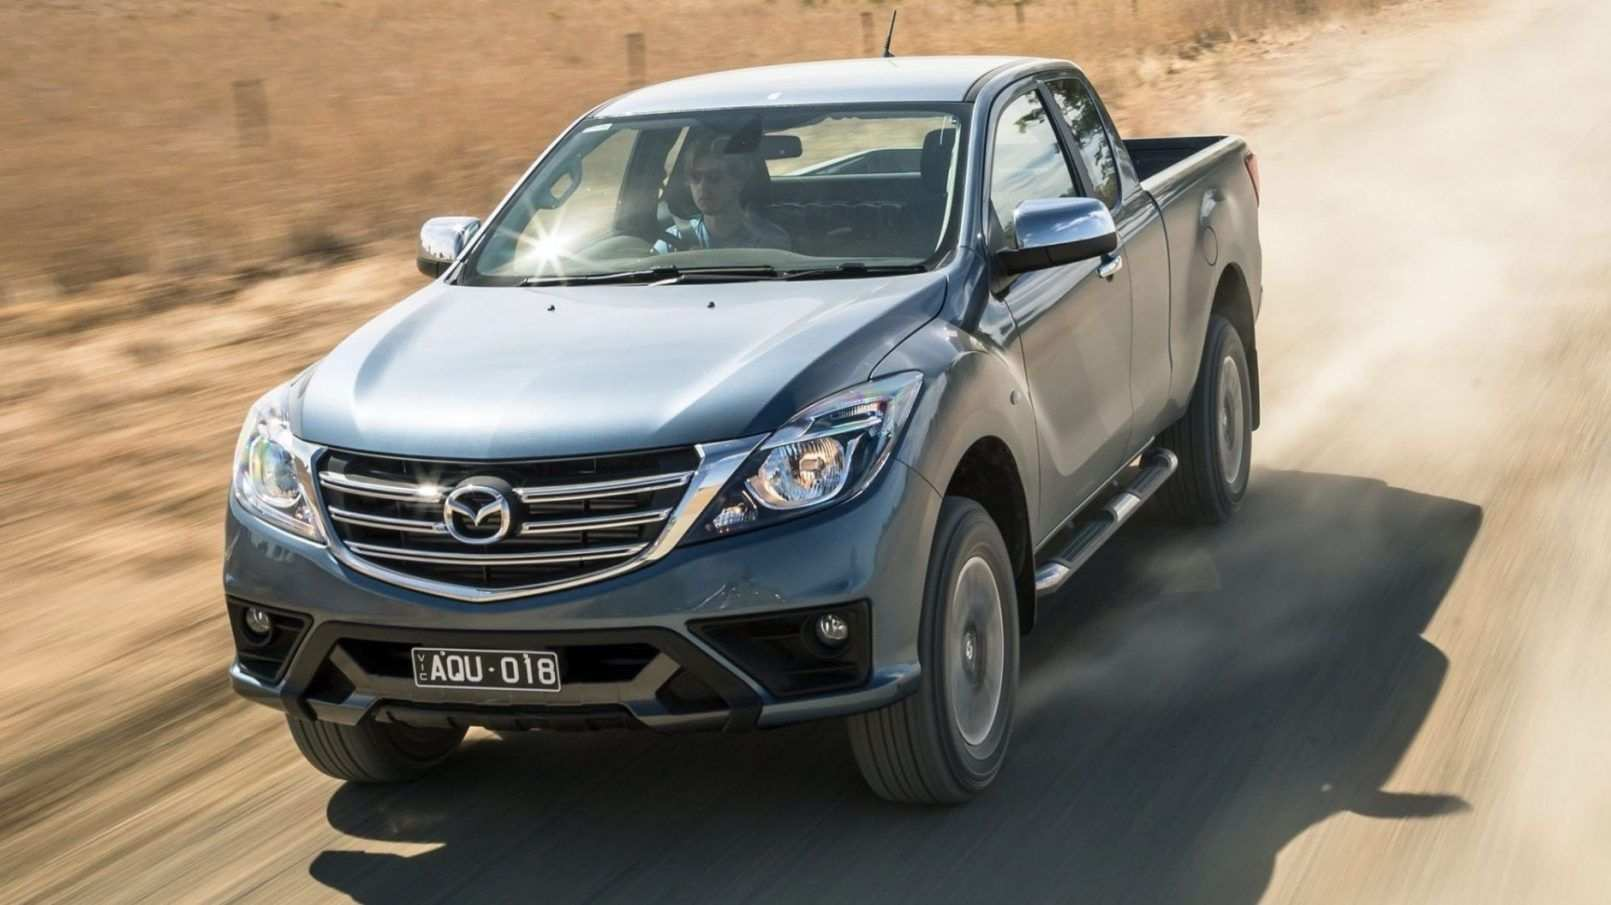 35 New 2019 Mazda Bt 50 Specs Interior by 2019 Mazda Bt 50 Specs